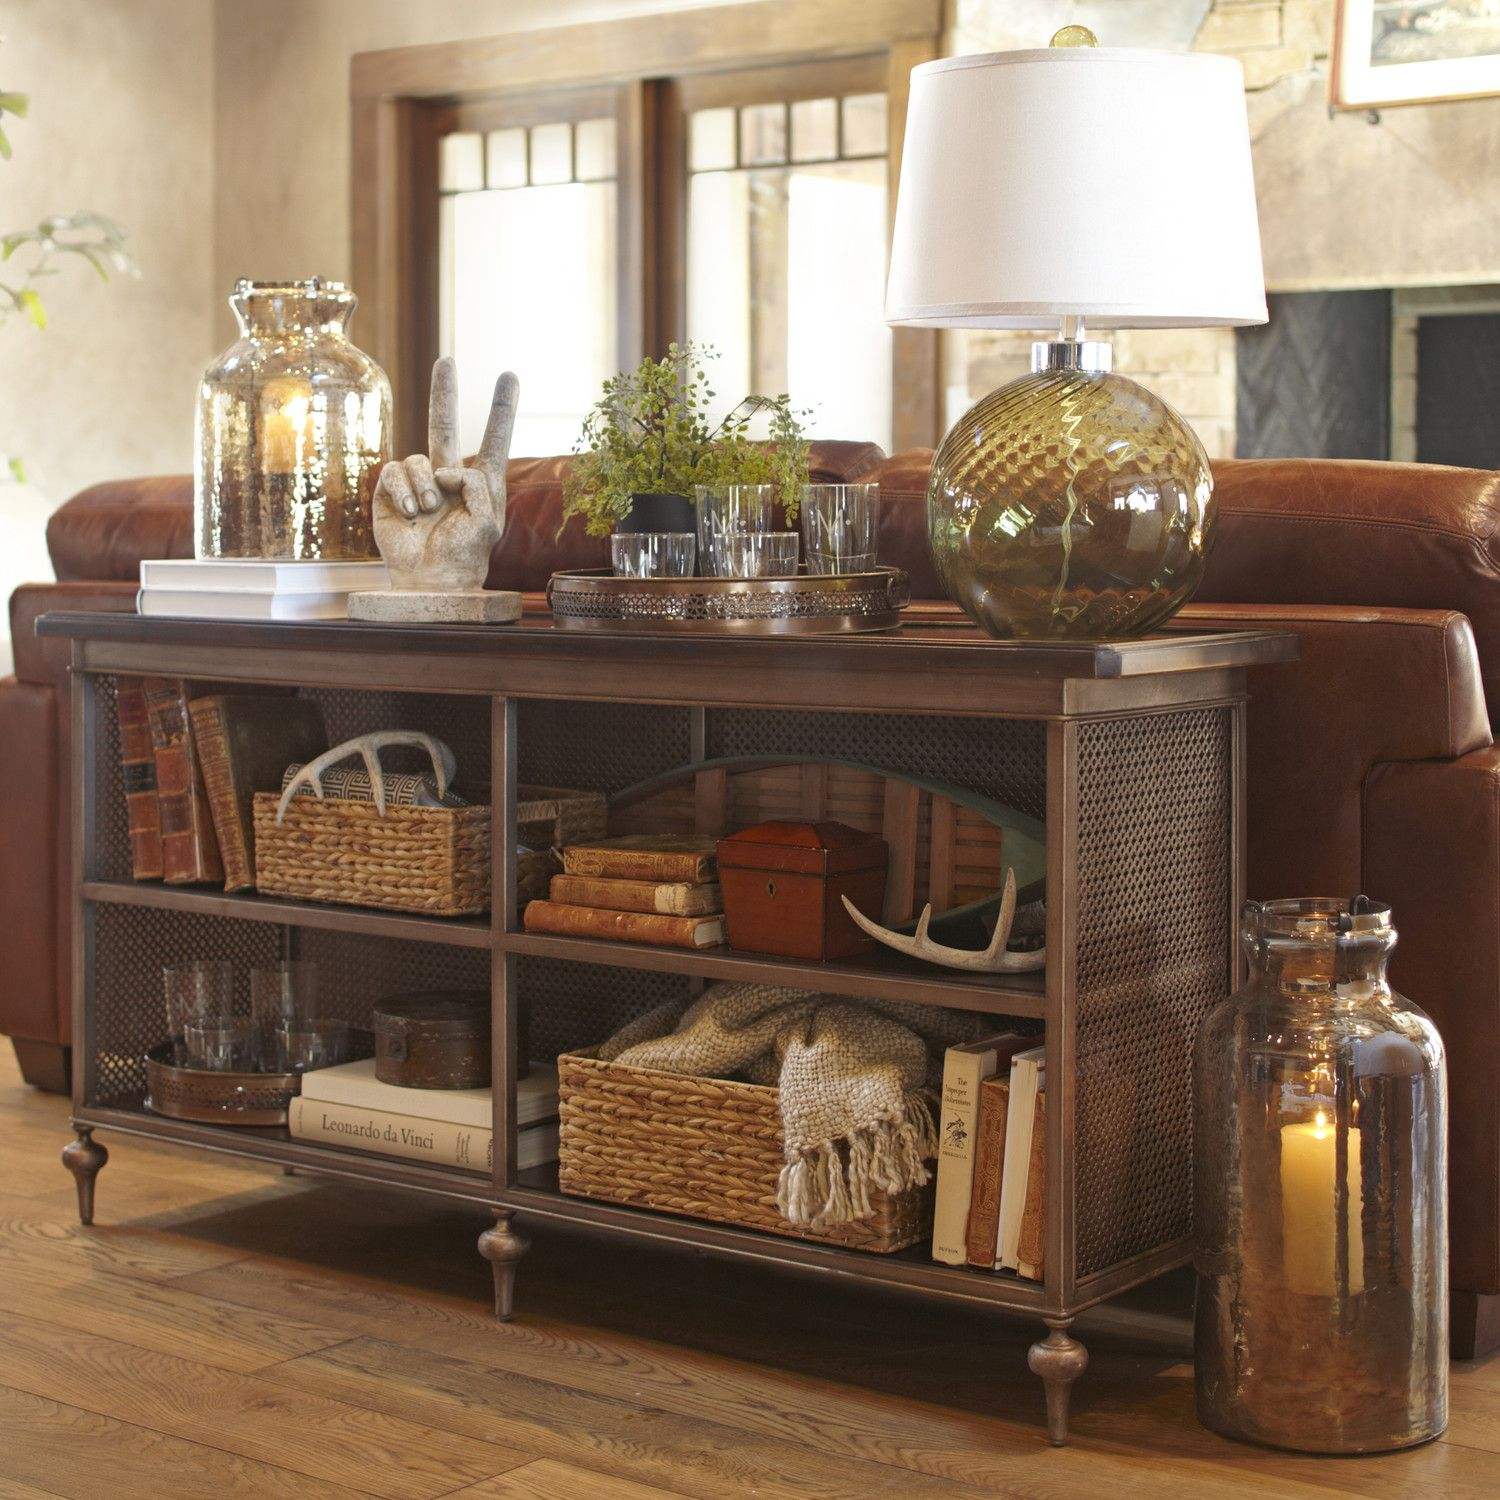 Buffet for bf nook home pinterest console tables buffet and